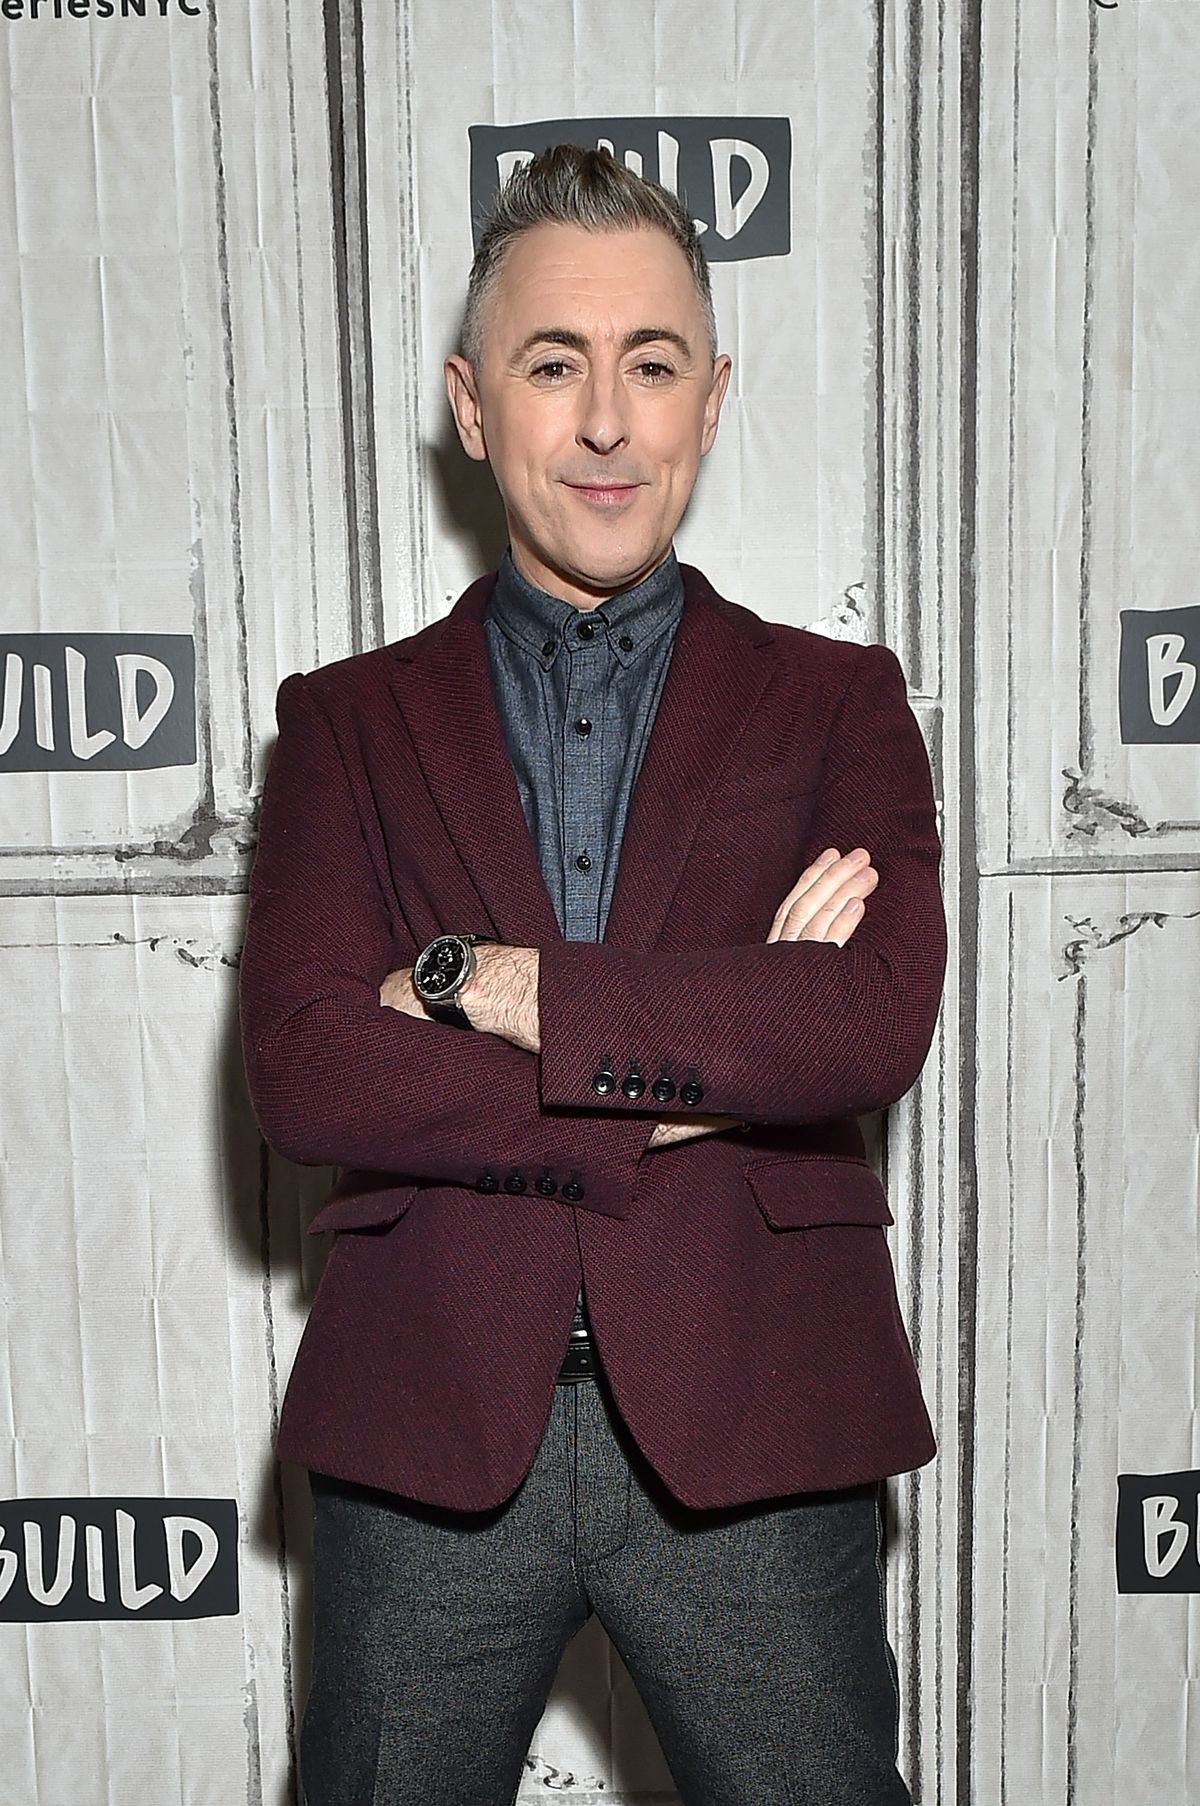 Alan Cumming poses for a photo at the Build Studio on March 14, 2018 in New York City. | Mike Coppola/Getty Images